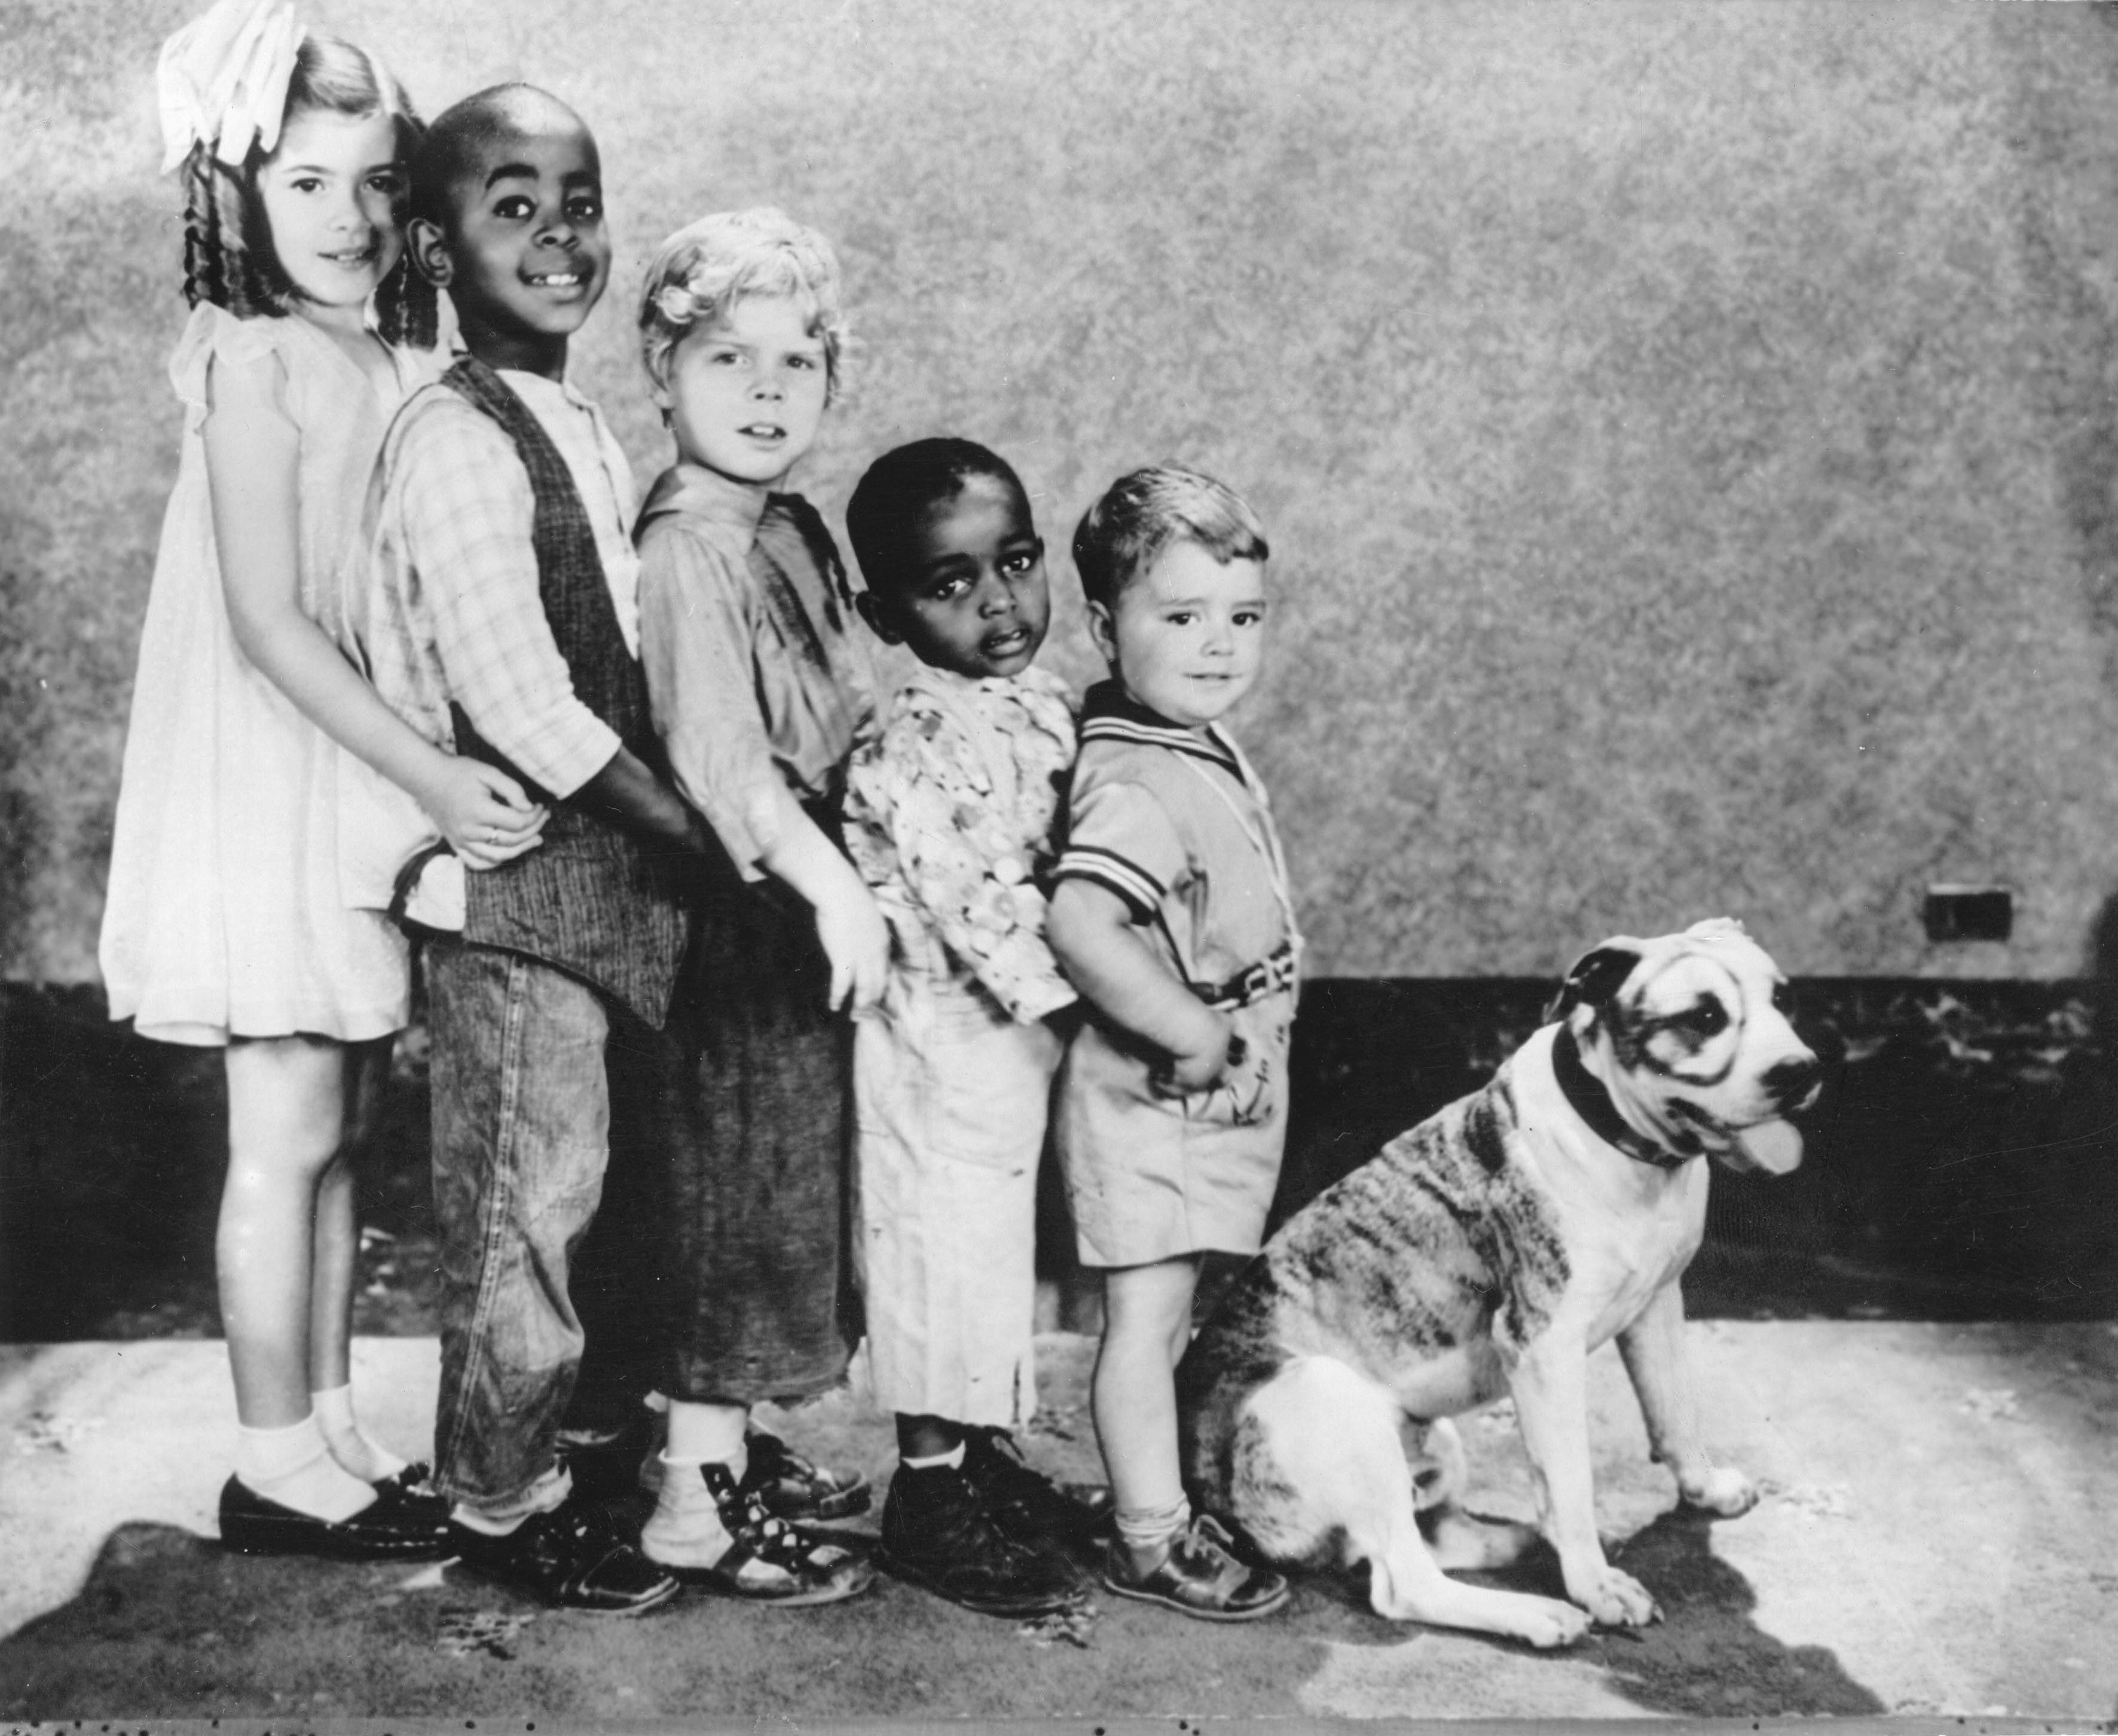 Petey the dog from  Little Rascals.